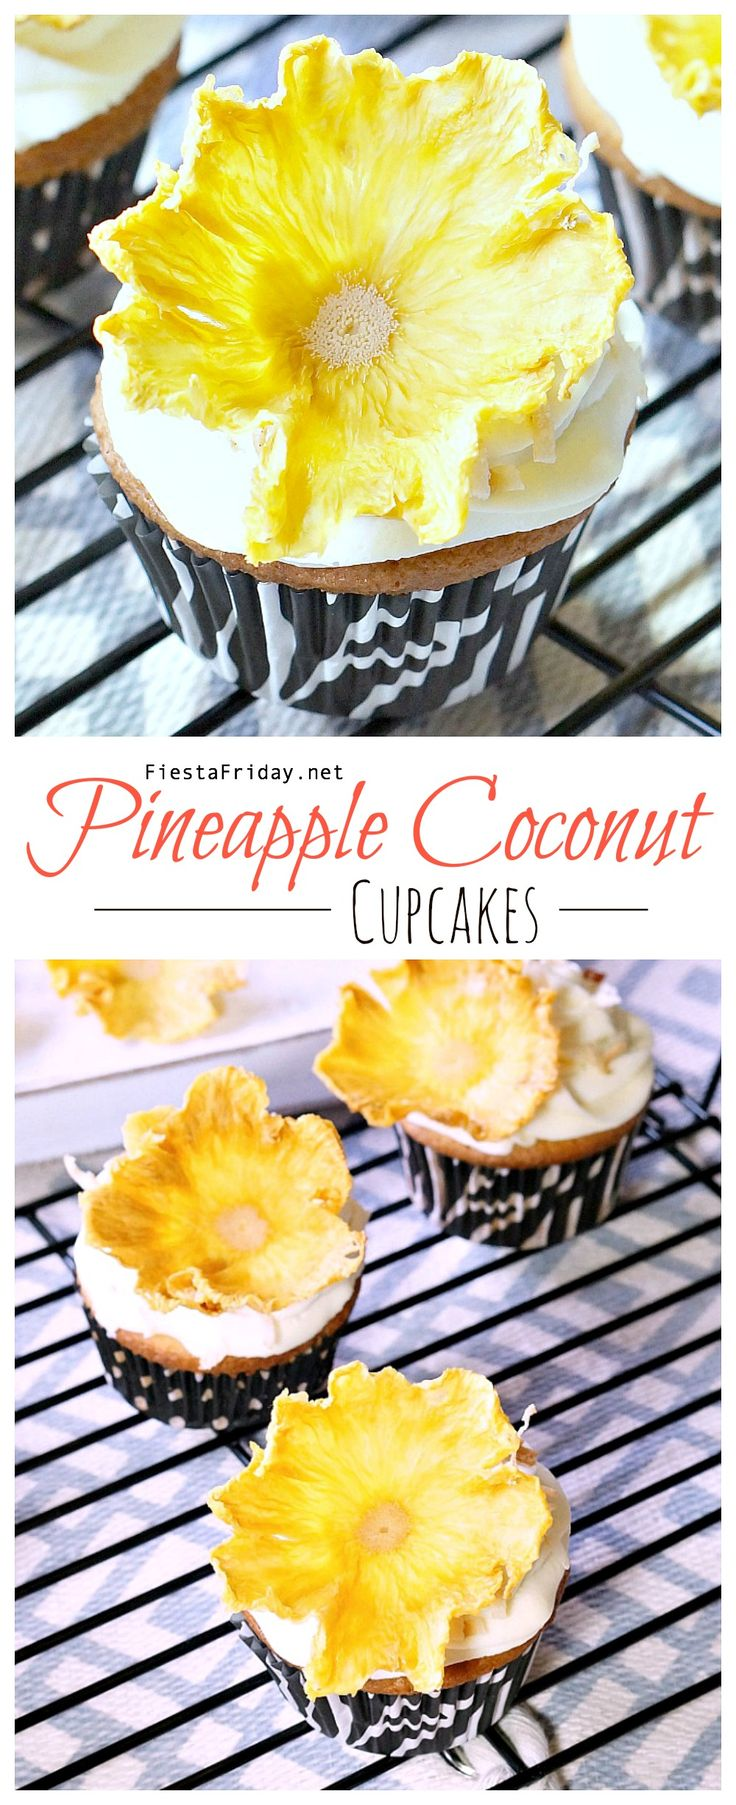 These pineapple coconut cupcakes combine the flavors of the tropics in a single bite!